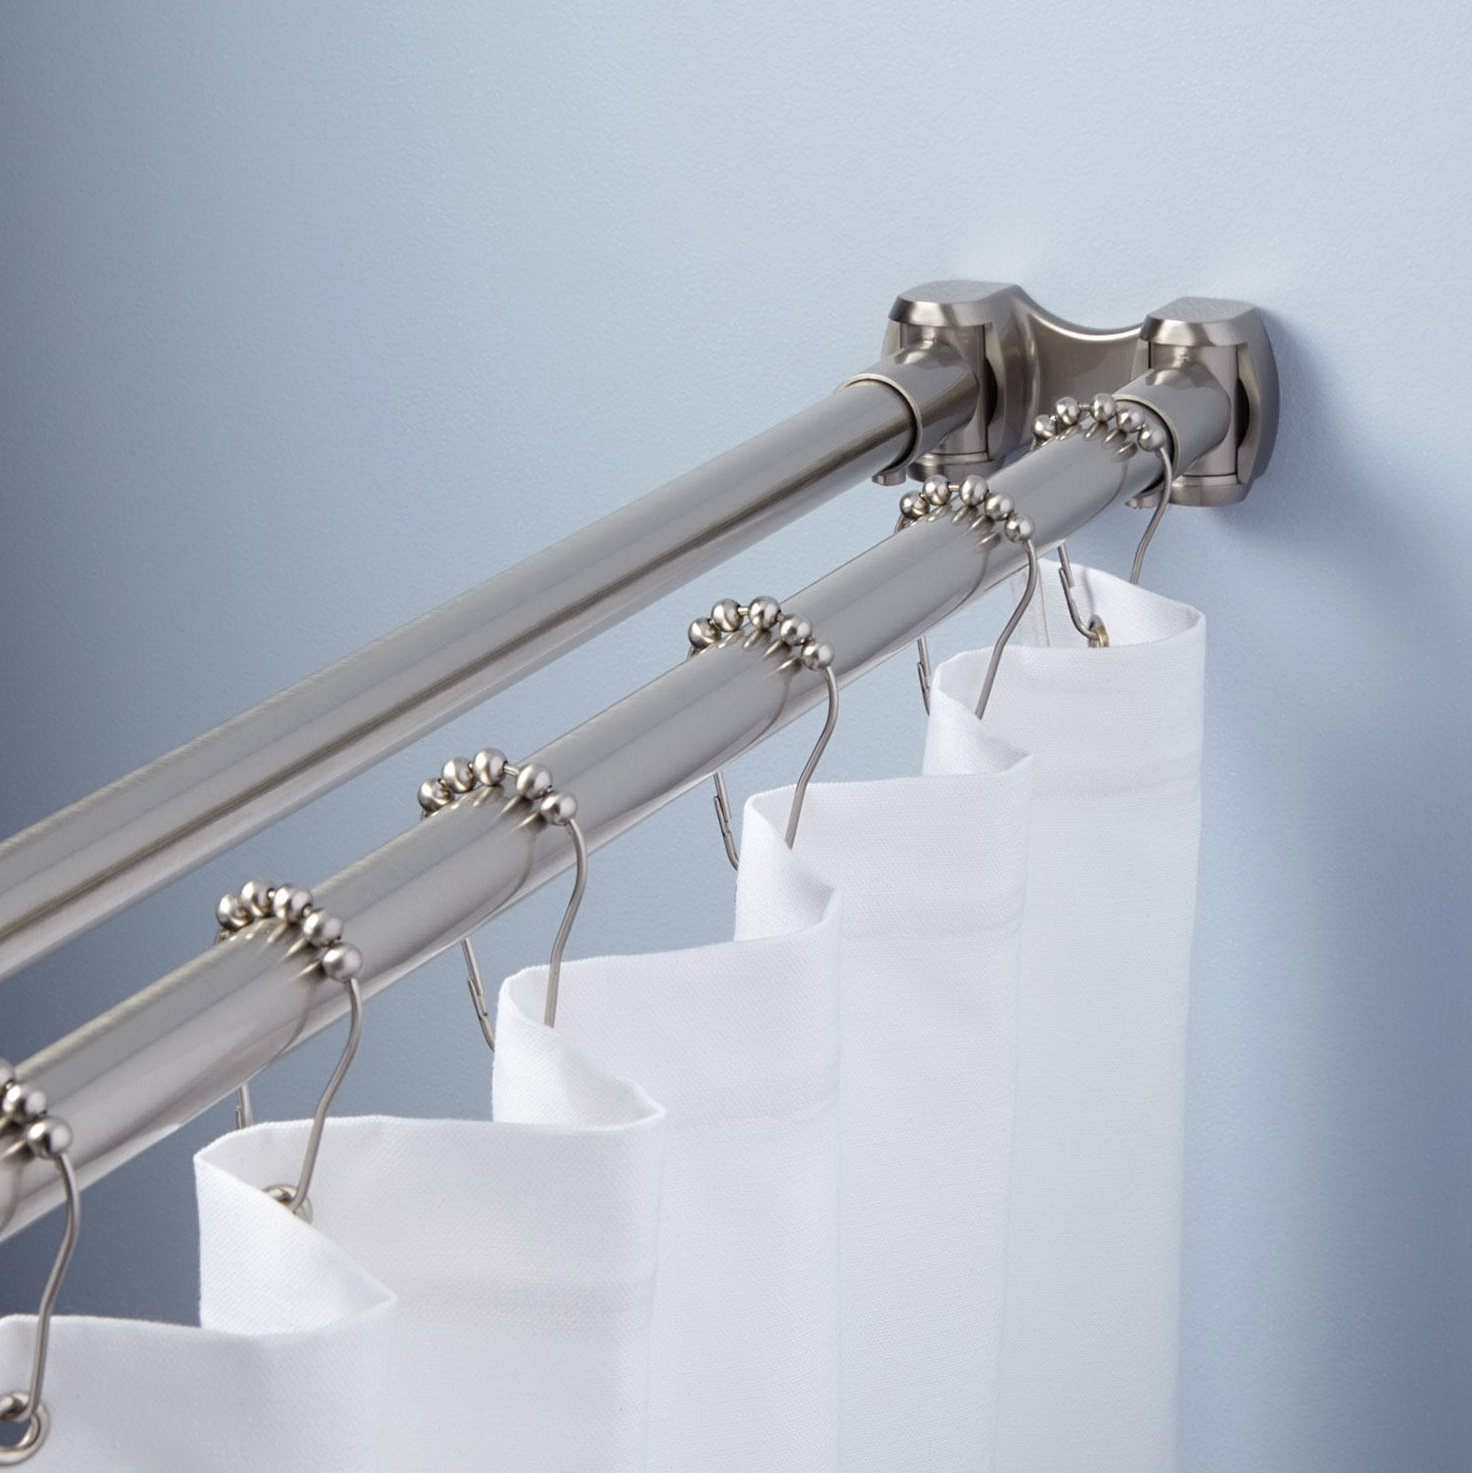 Shower Curtain Tension Rod Length